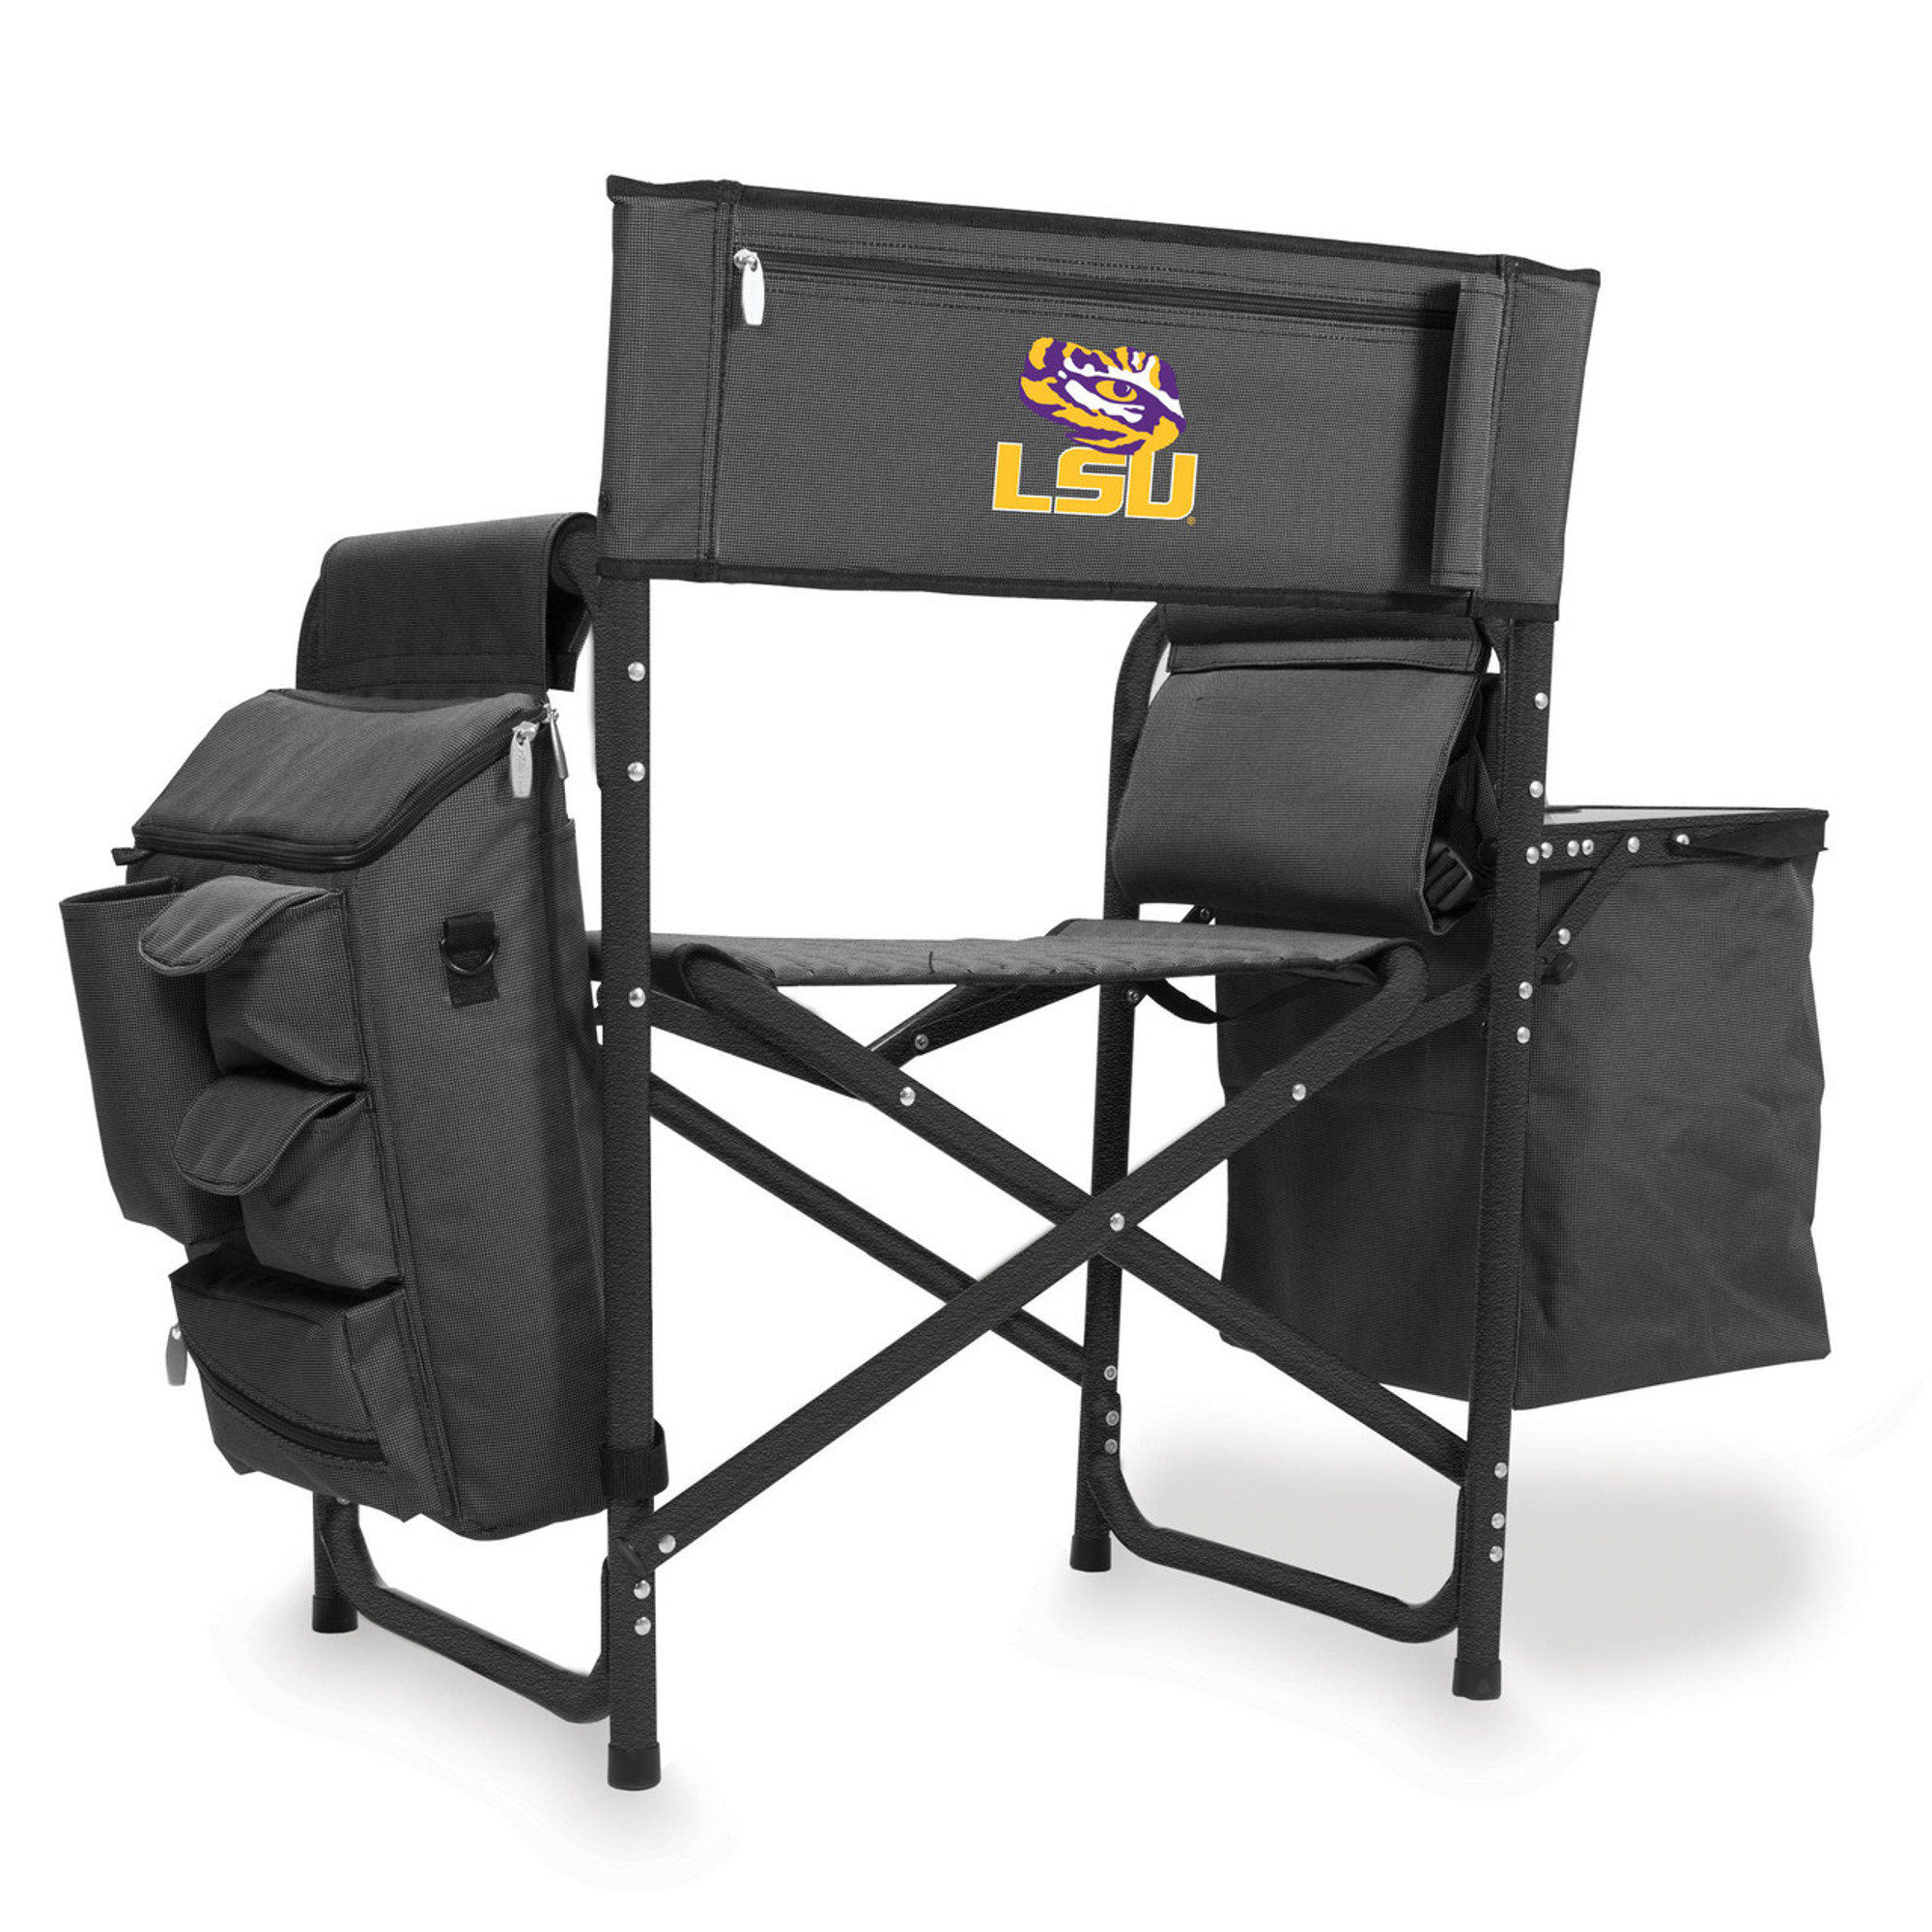 Tailgating Chairs Lsu Tigers Fusion Tailgating Chair